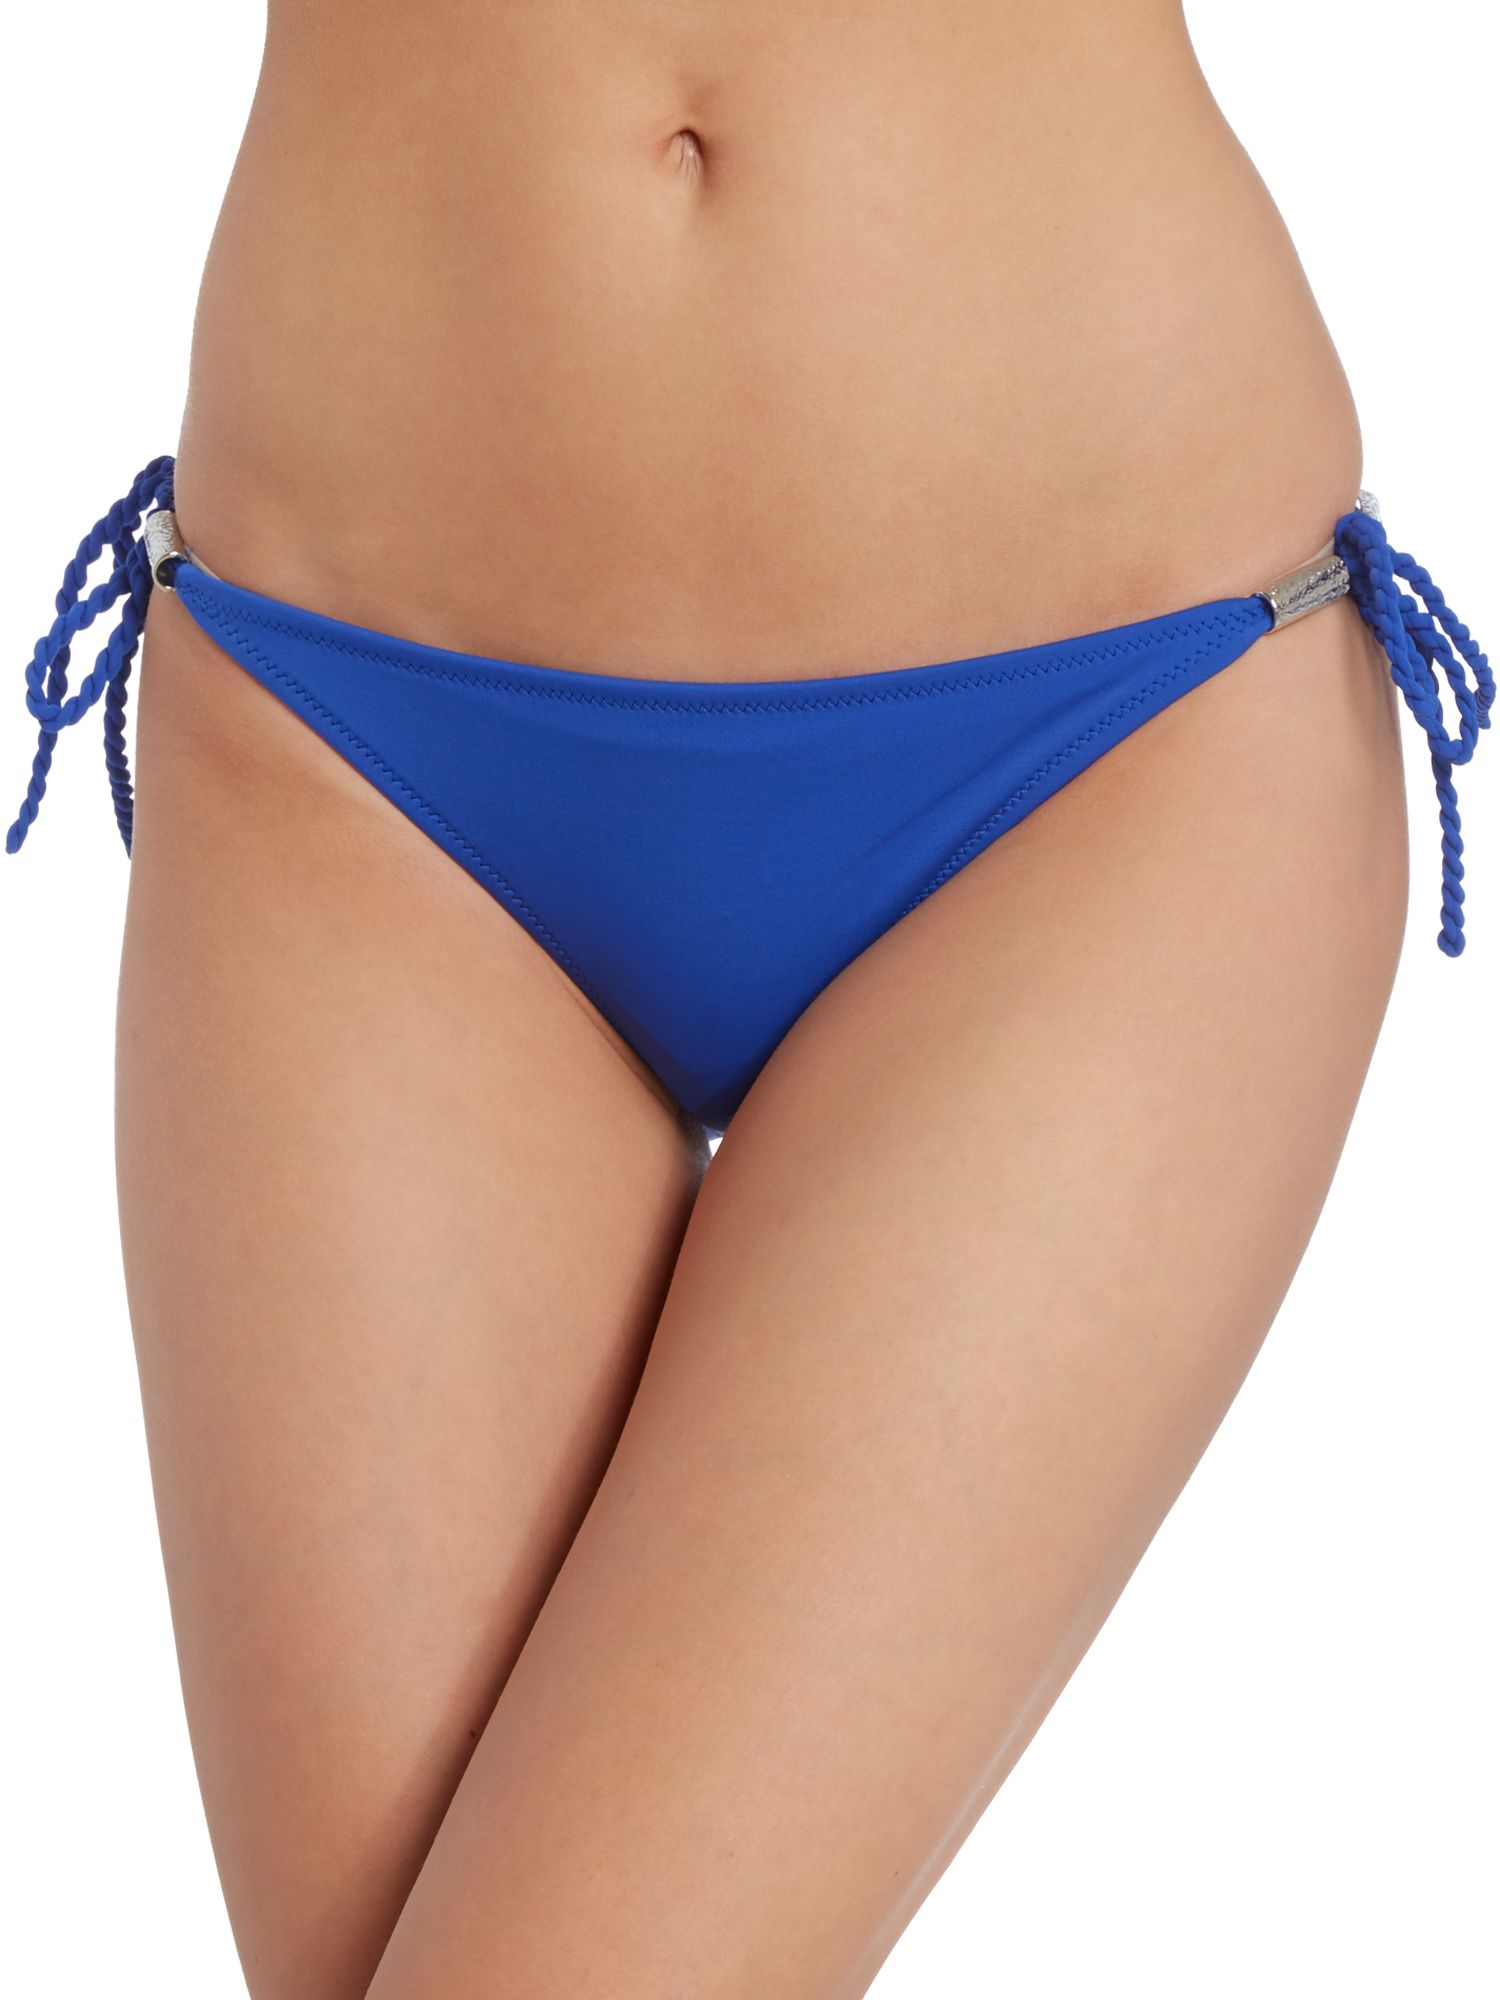 Saint lucia rope tie side brief